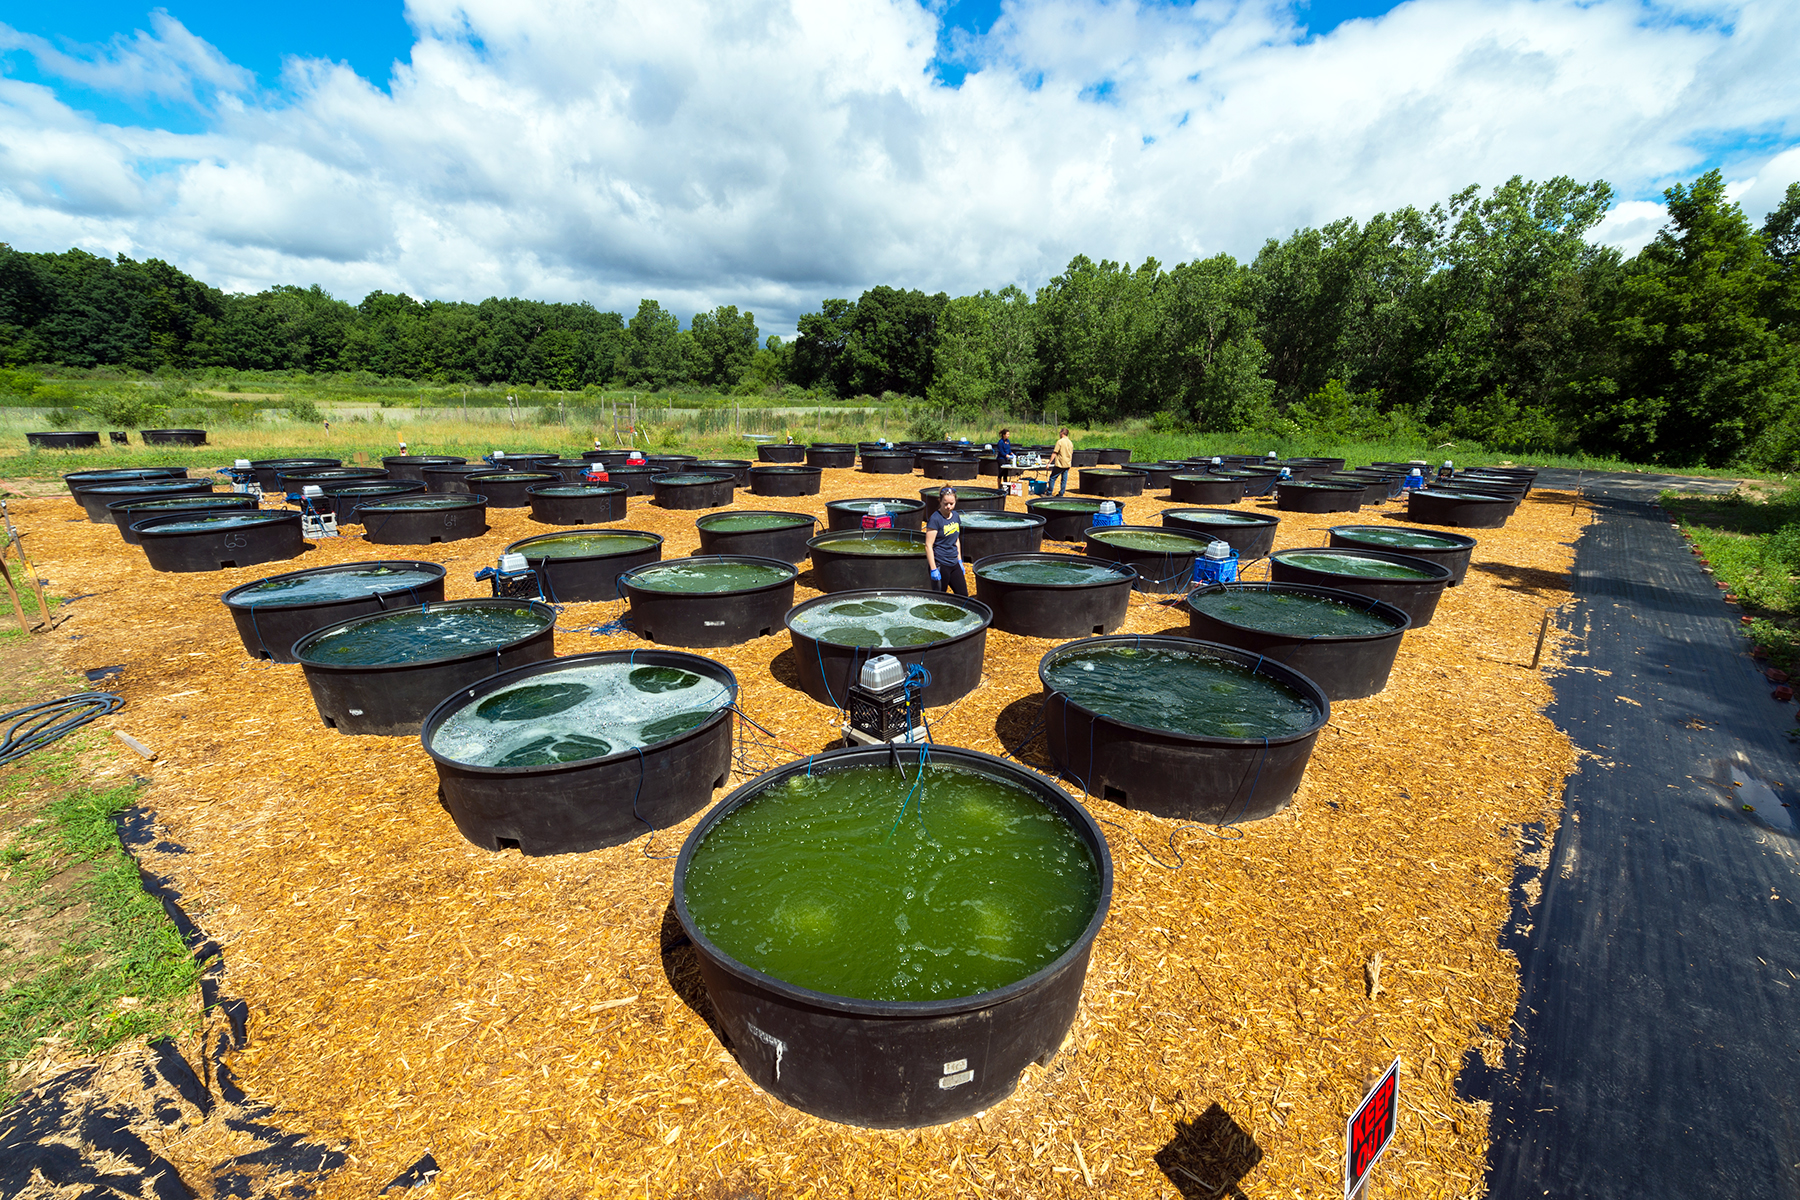 From ponds to power: $2M to perfect algae as diesel fuel. Alagal Species